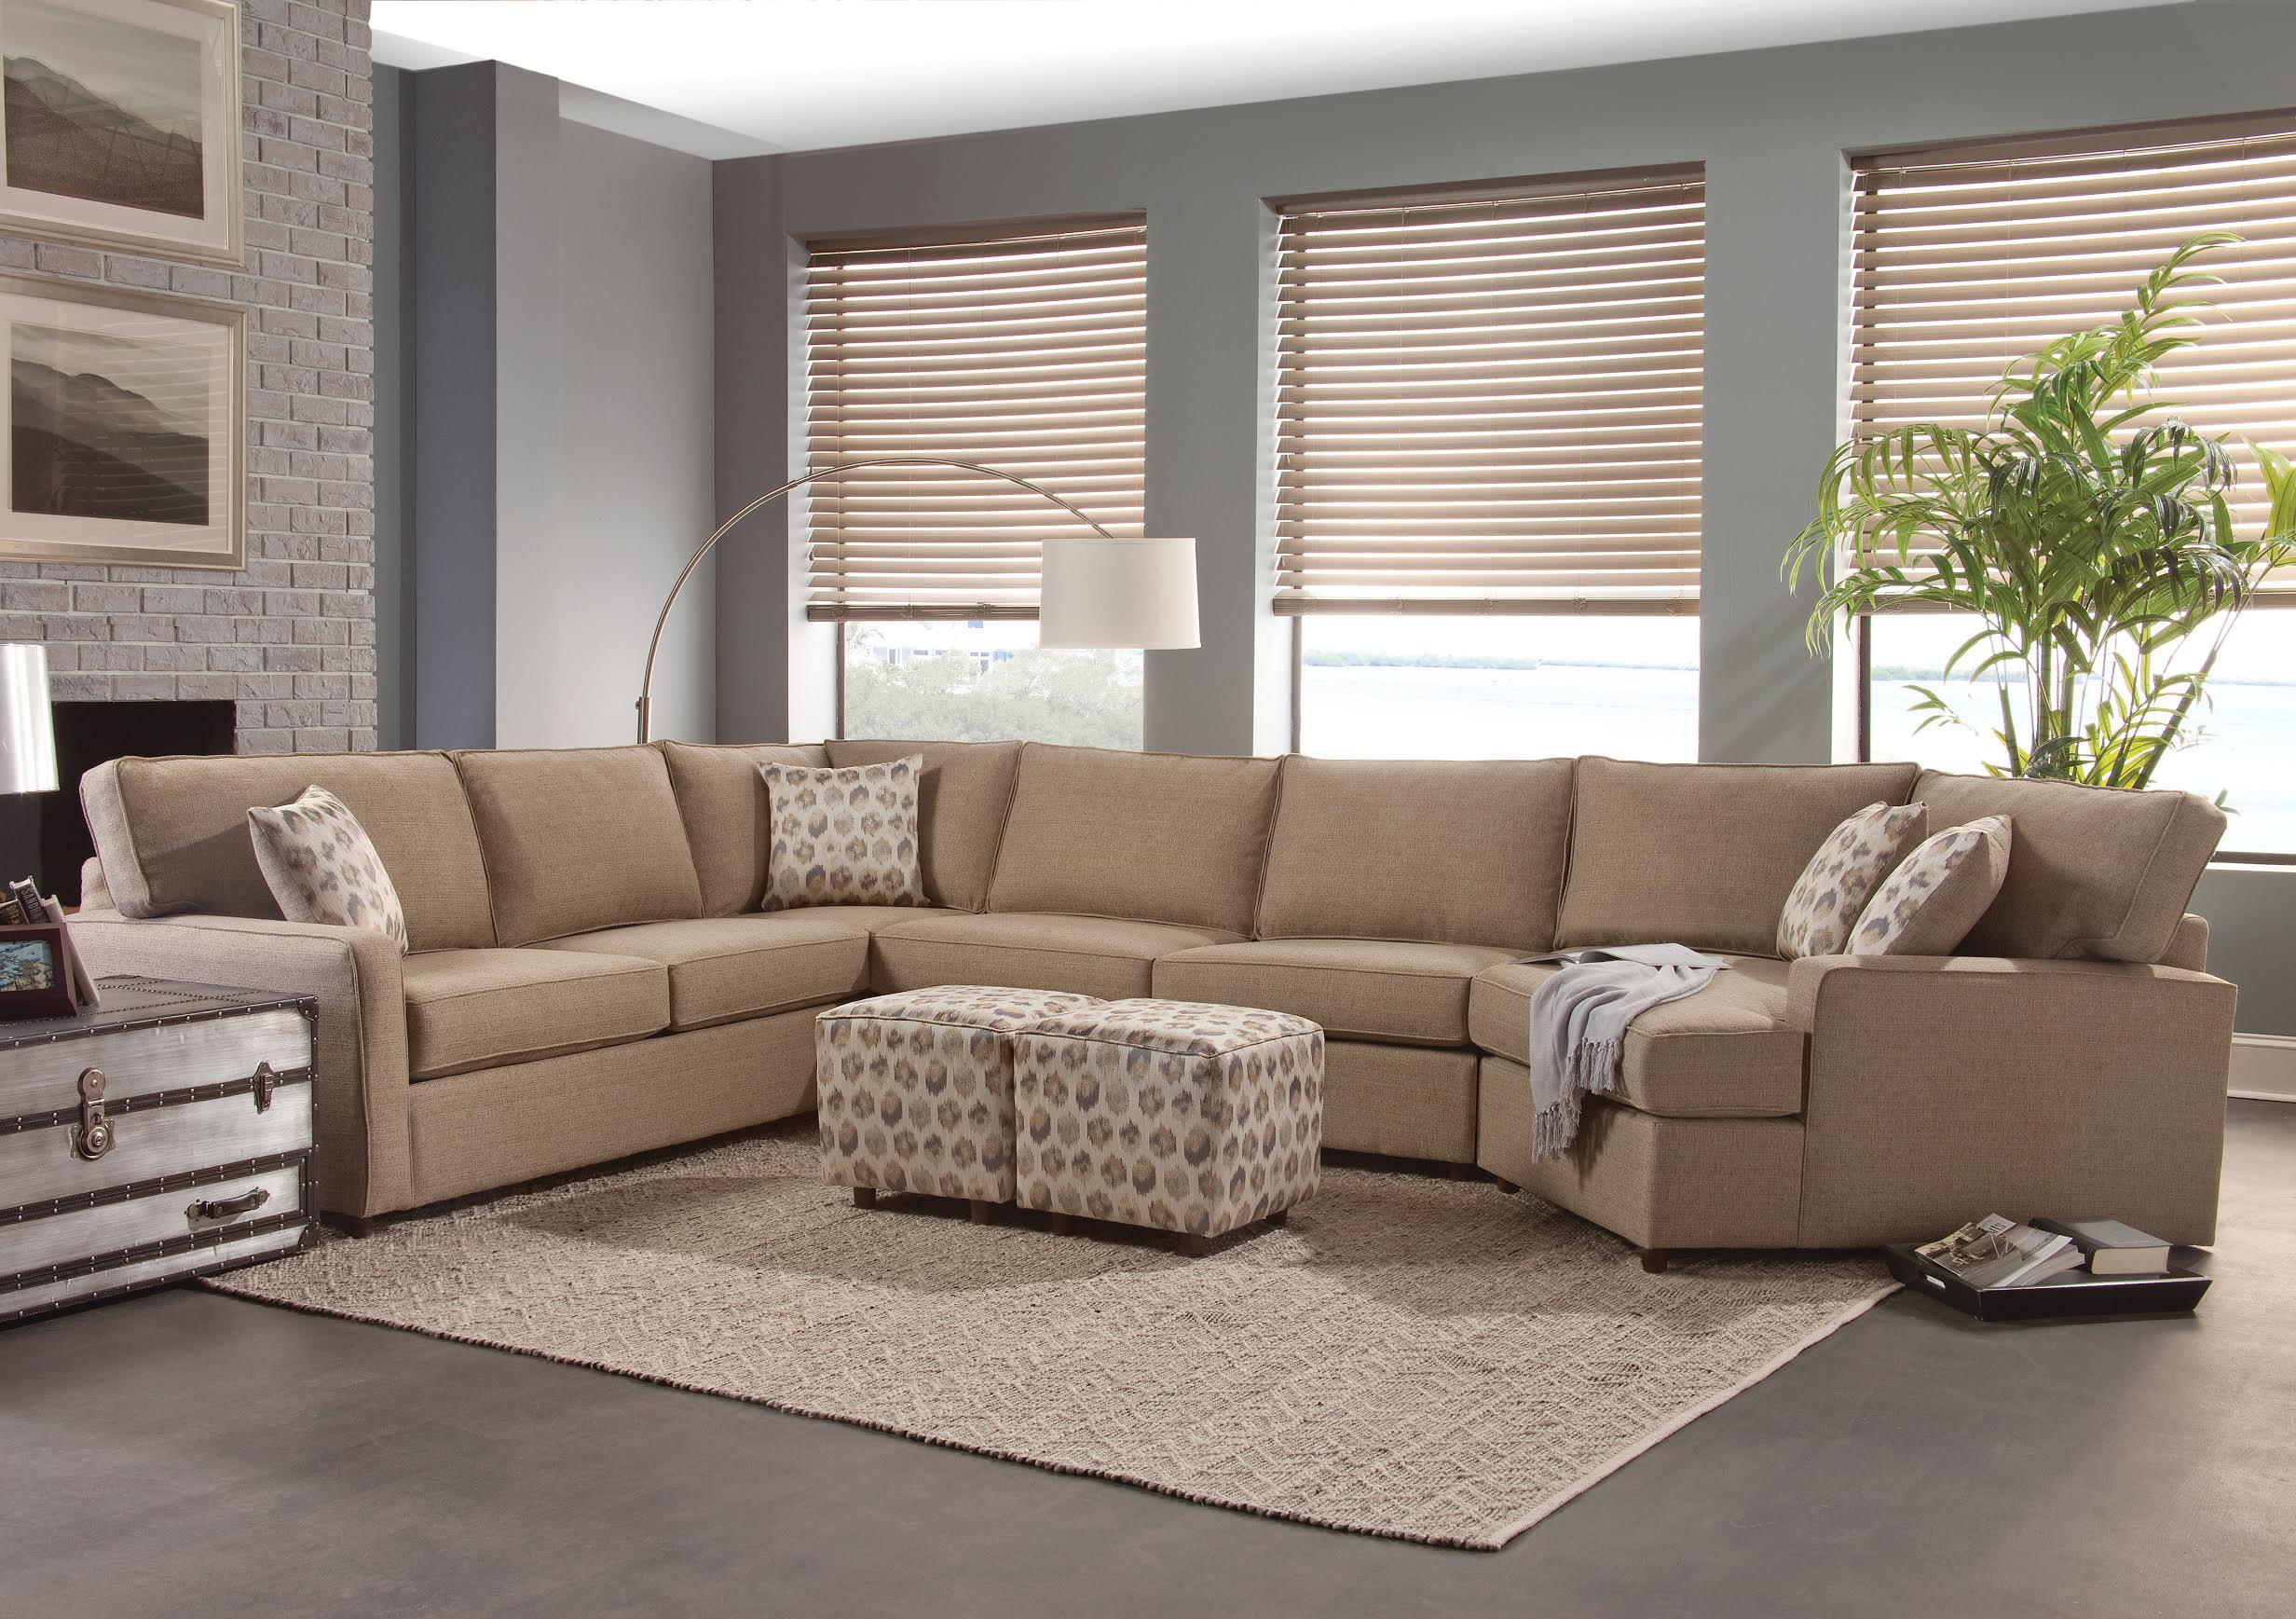 Belfort Essentials Eliot Transitional Sectional Sofa Belfort